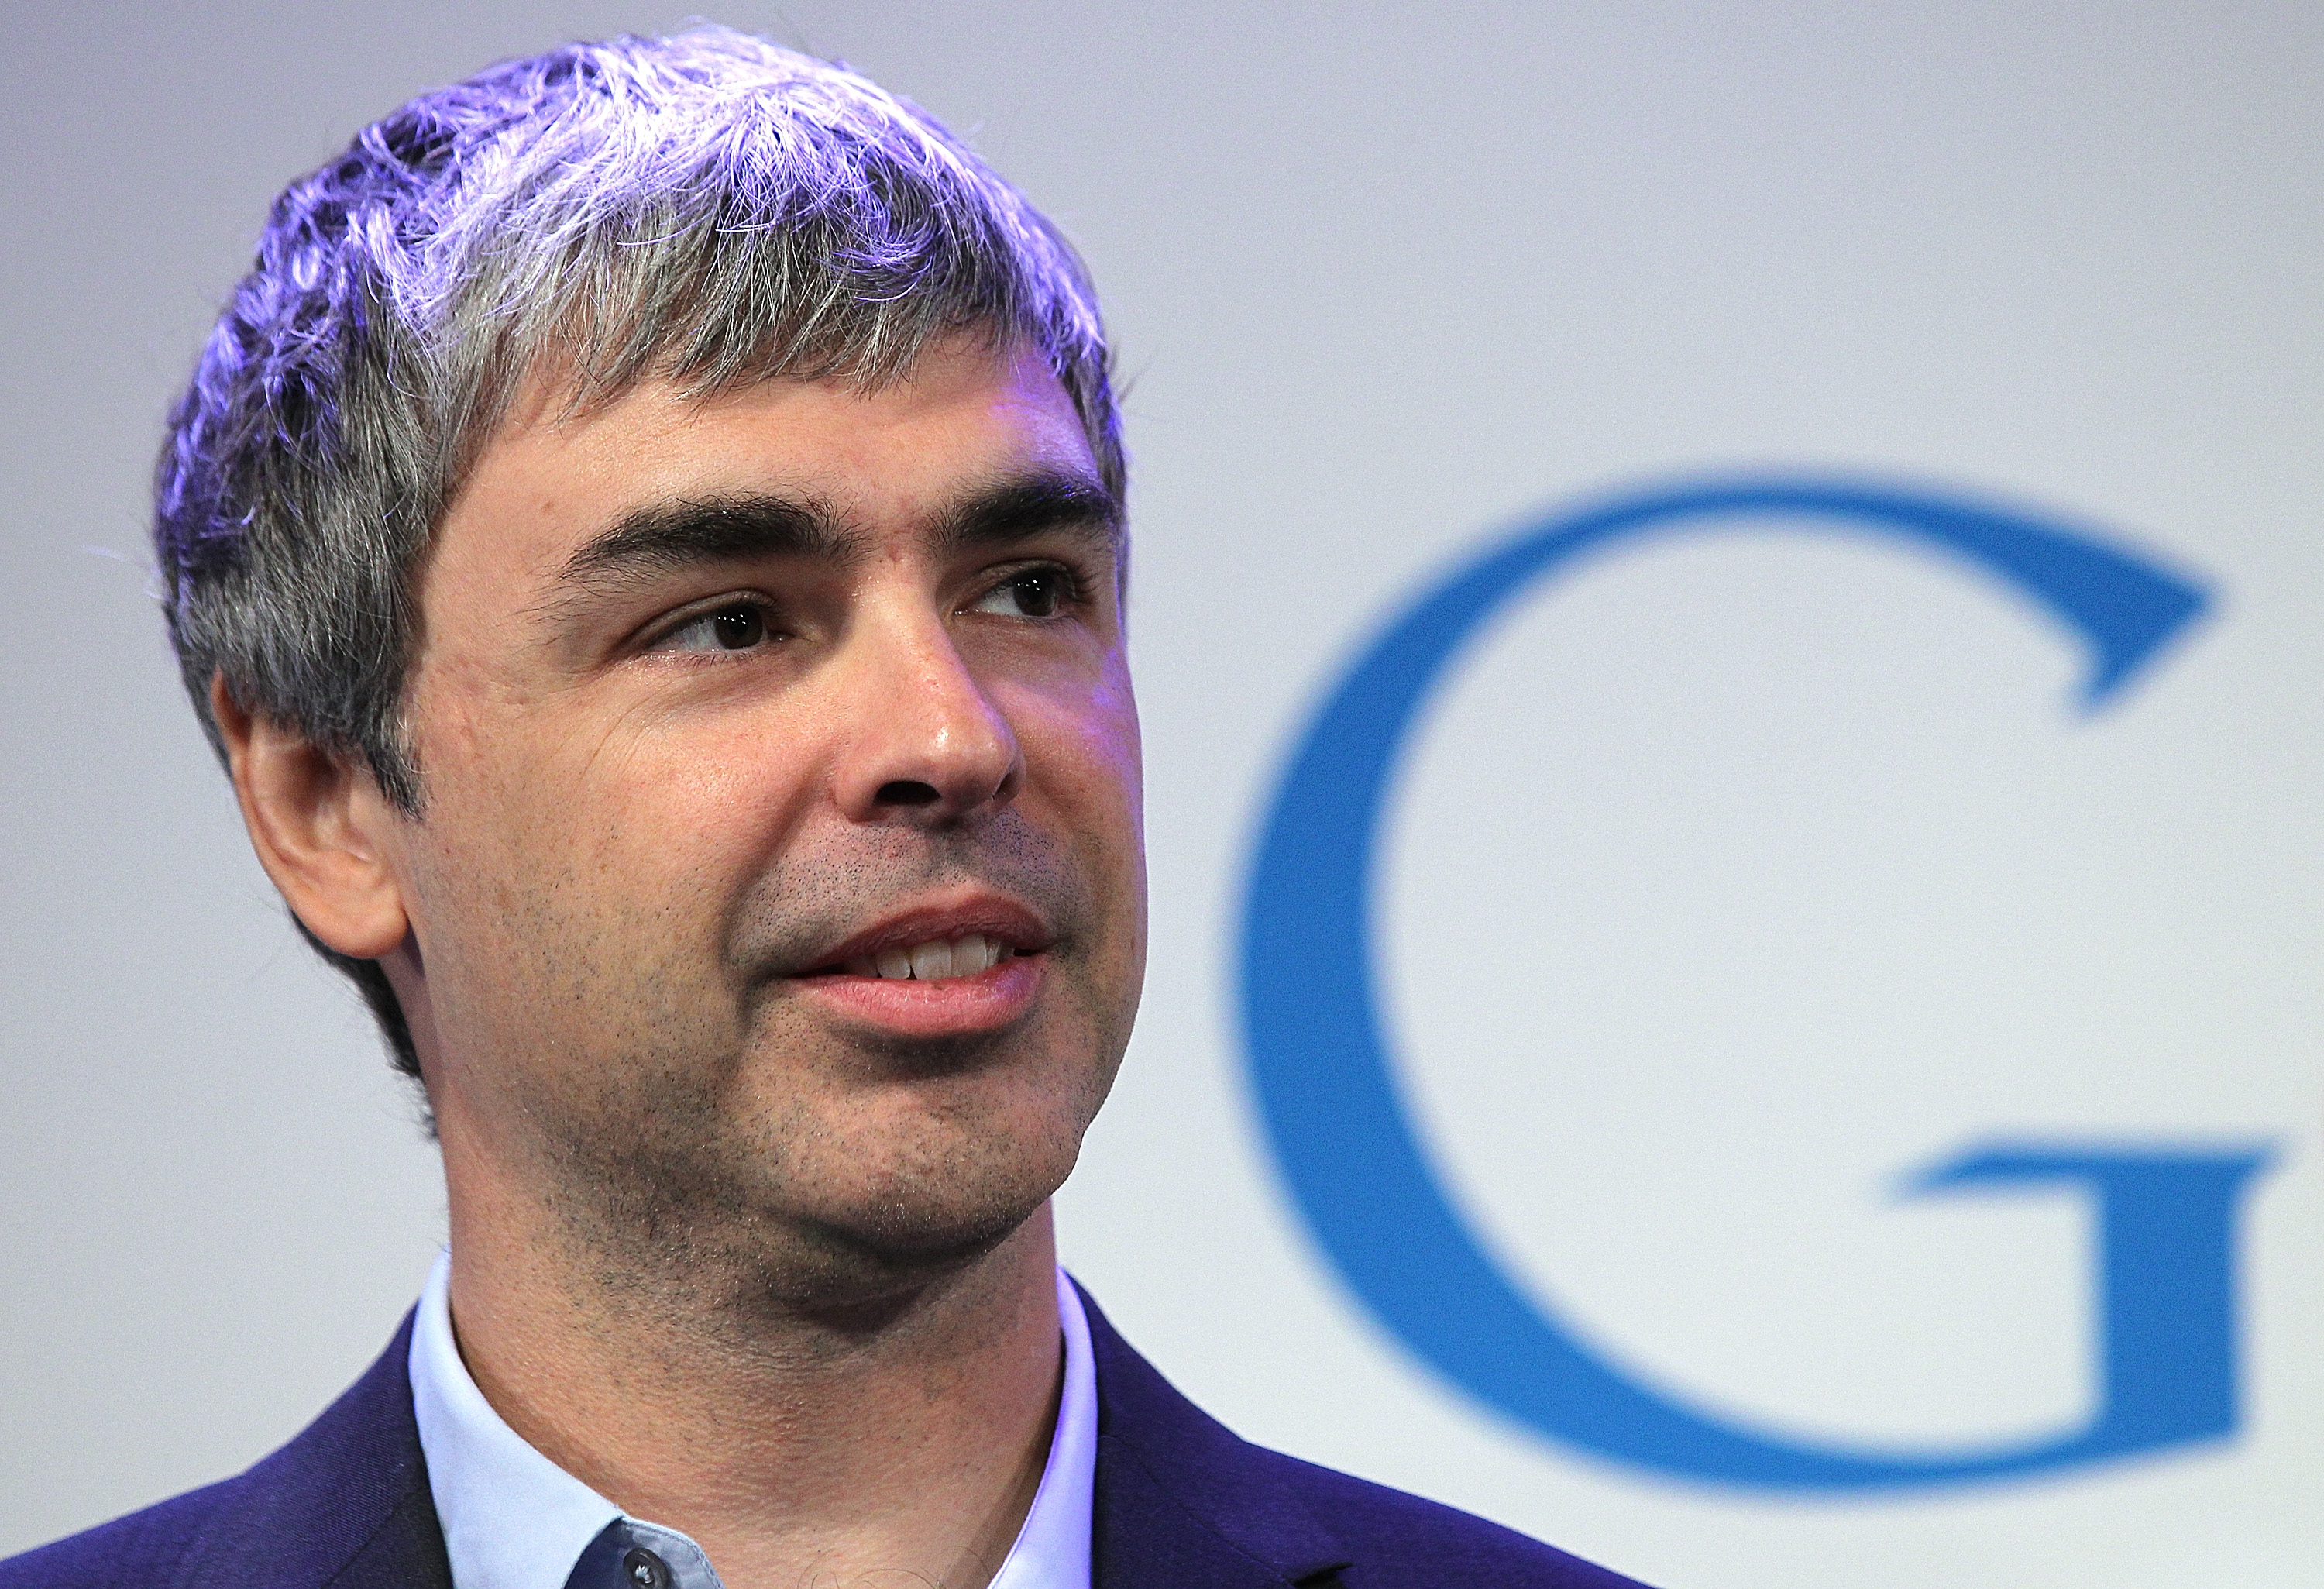 Larry Page at a news conference at the Google offices in New York City on May 21, 2012.